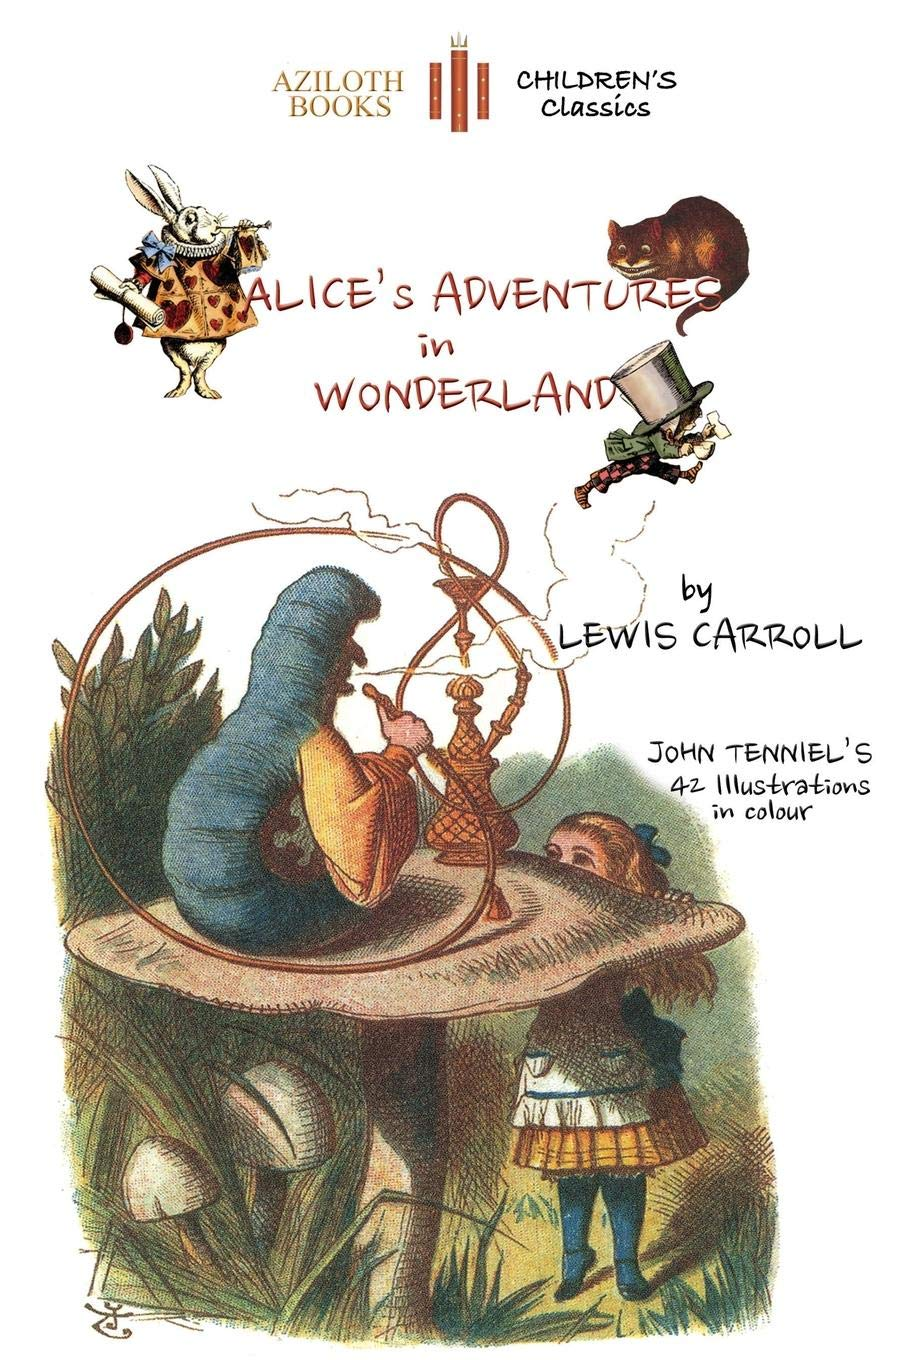 Download Alice's Adventures in Wonderland: The only edition with all 42 of John Tenniel's illustrations in COLOUR (Aziloth Books) PDF